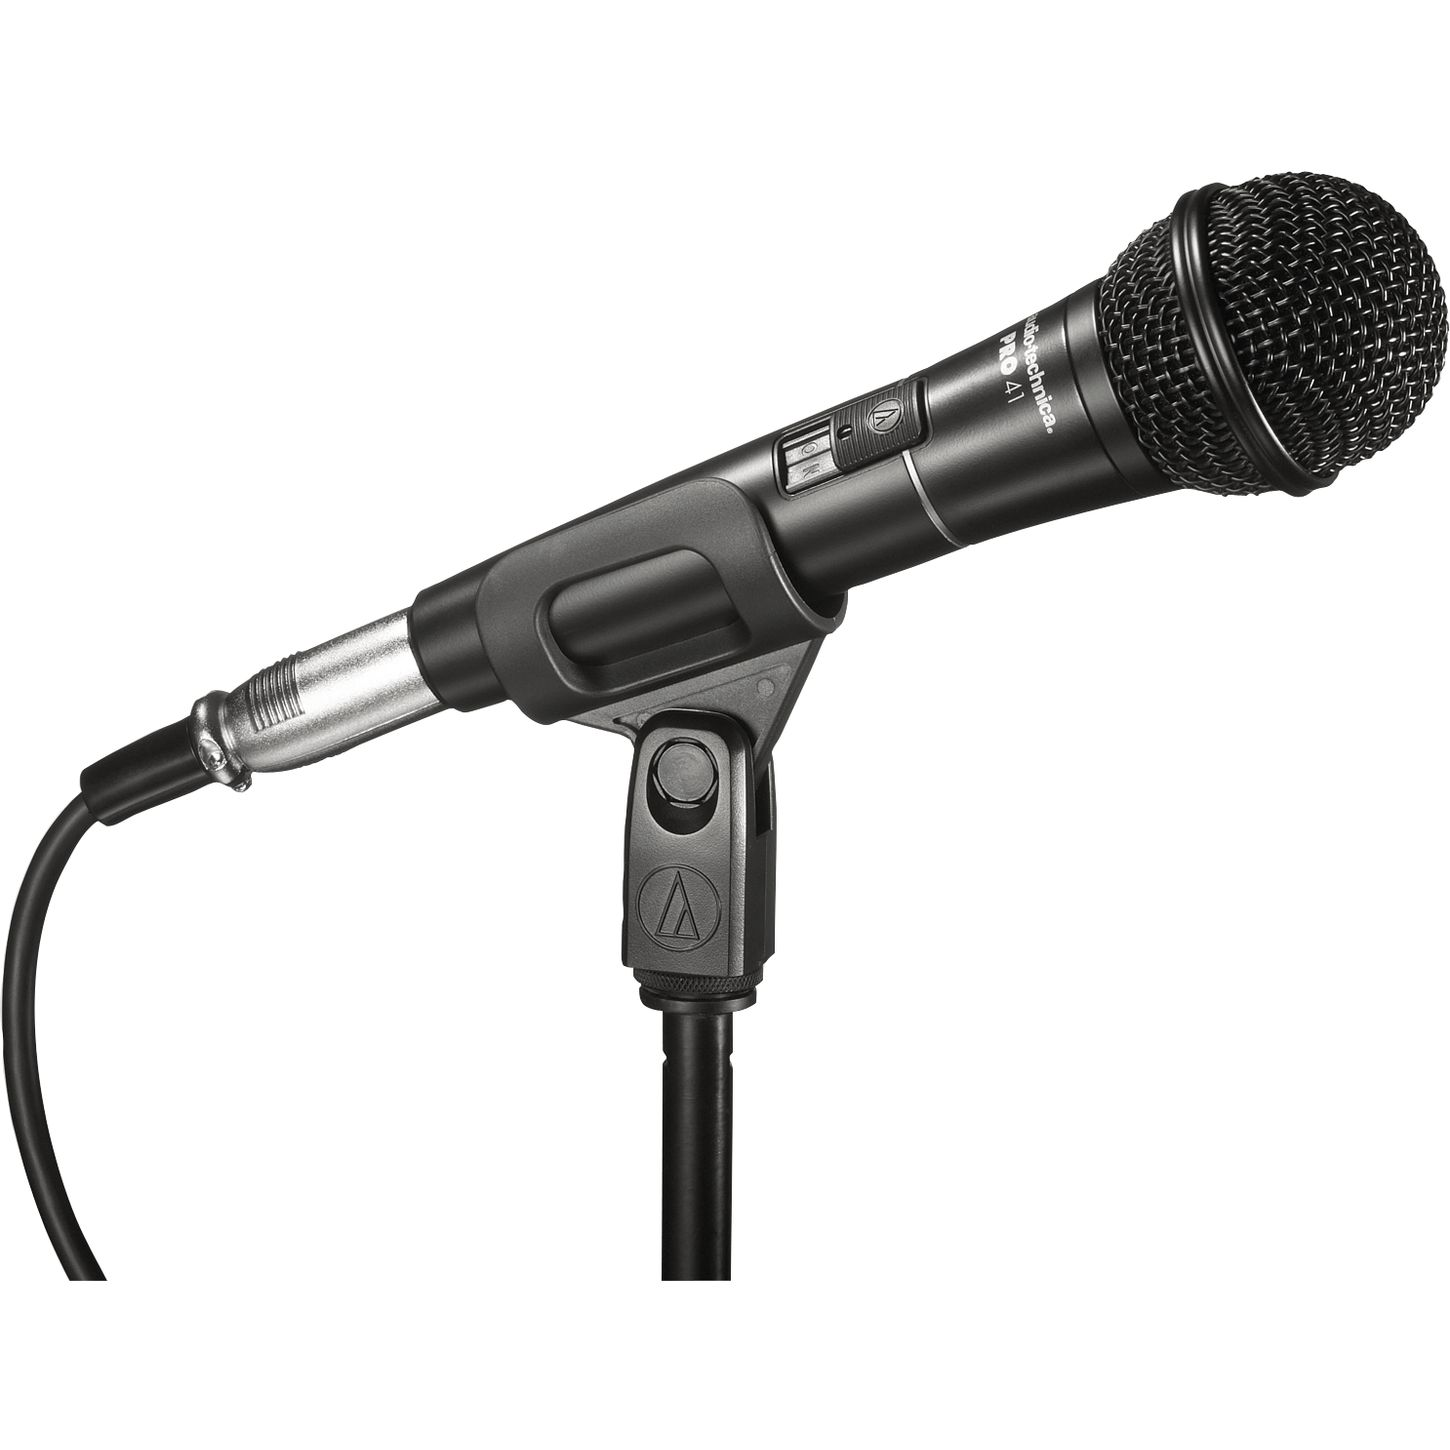 Microphone Clipart Black And White | Clipart Panda - Free Clipart ...